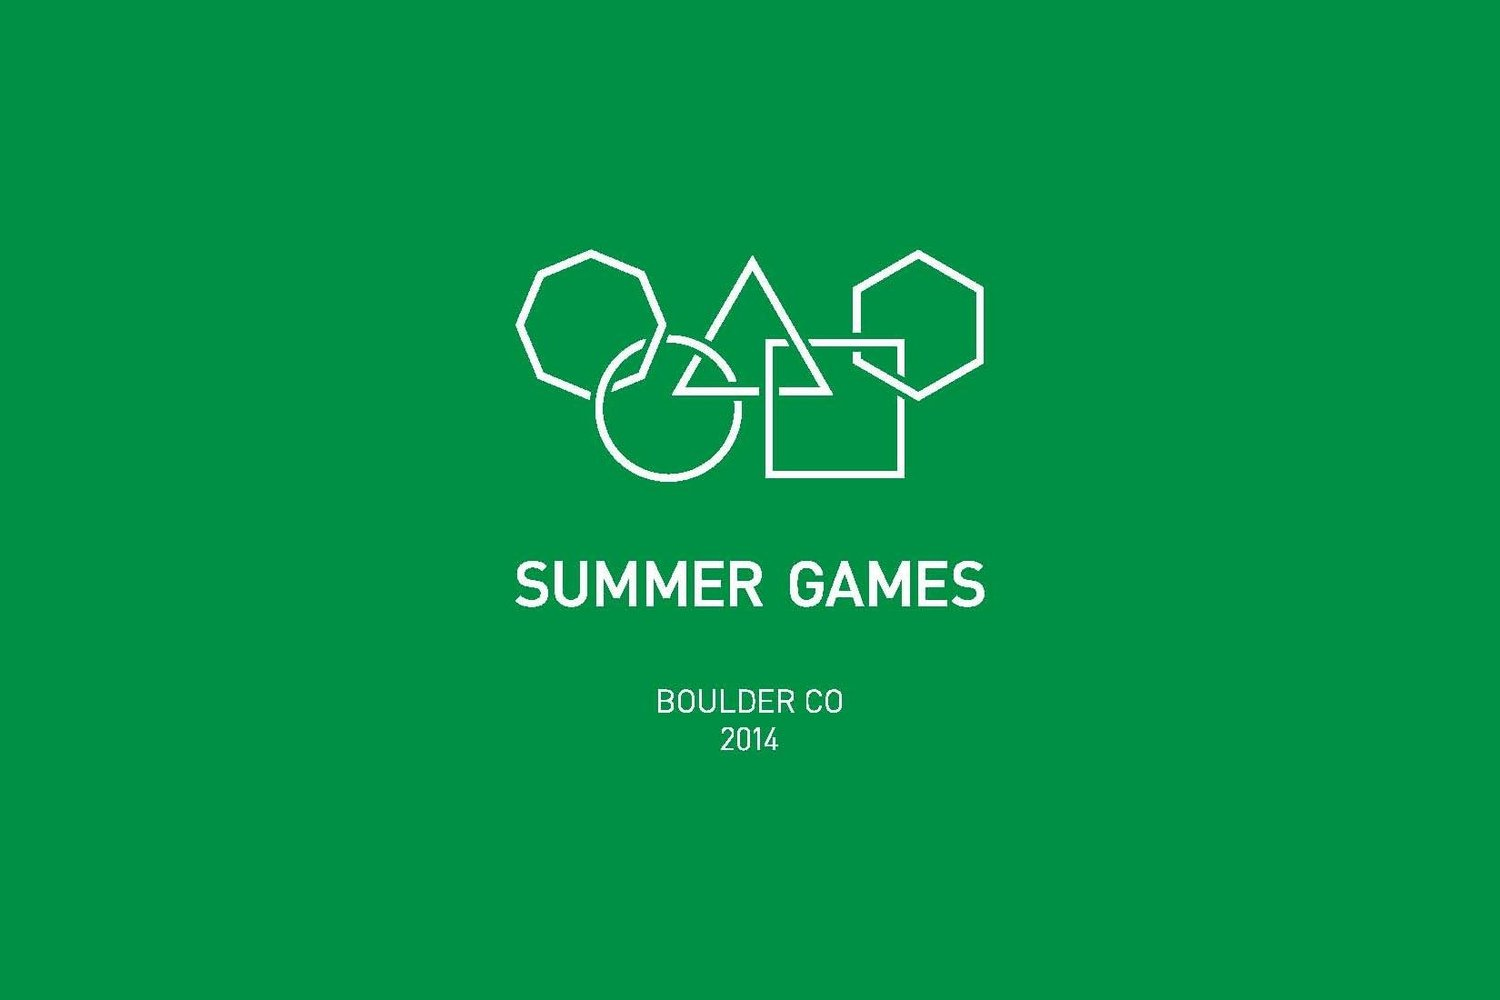 BMoCA.Summer.Games.ID.R5_3.jpg